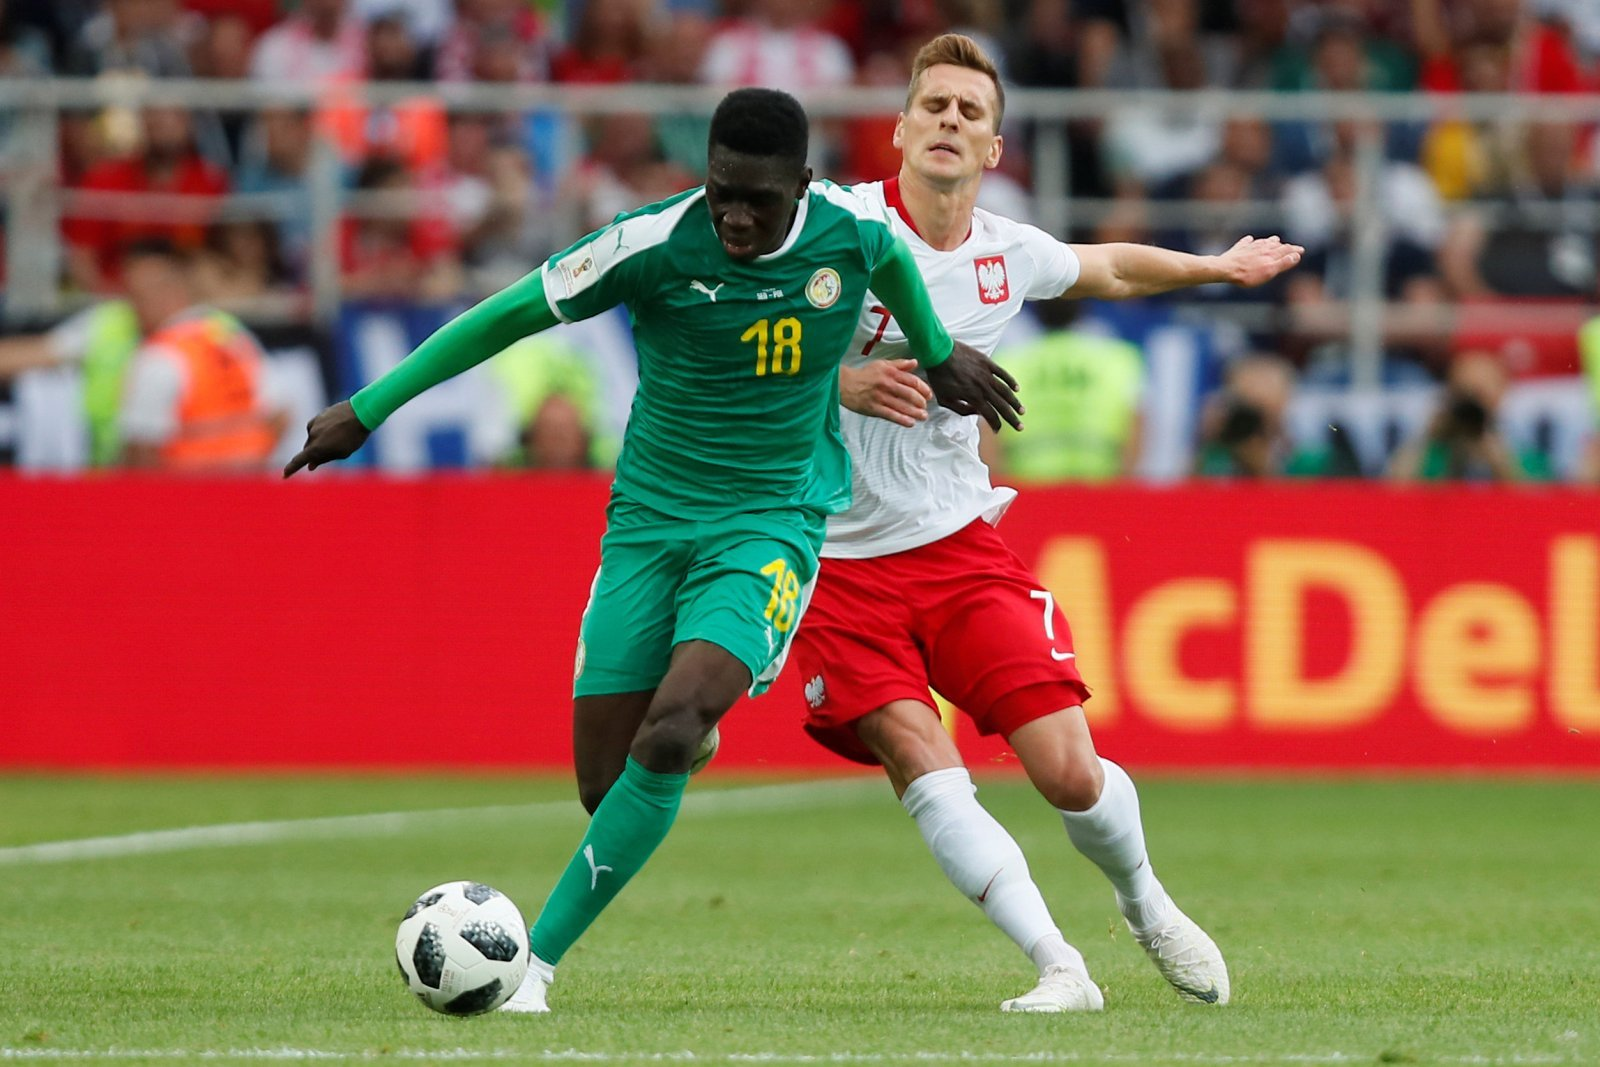 Tottenham set to battle for Ismaila Sarr